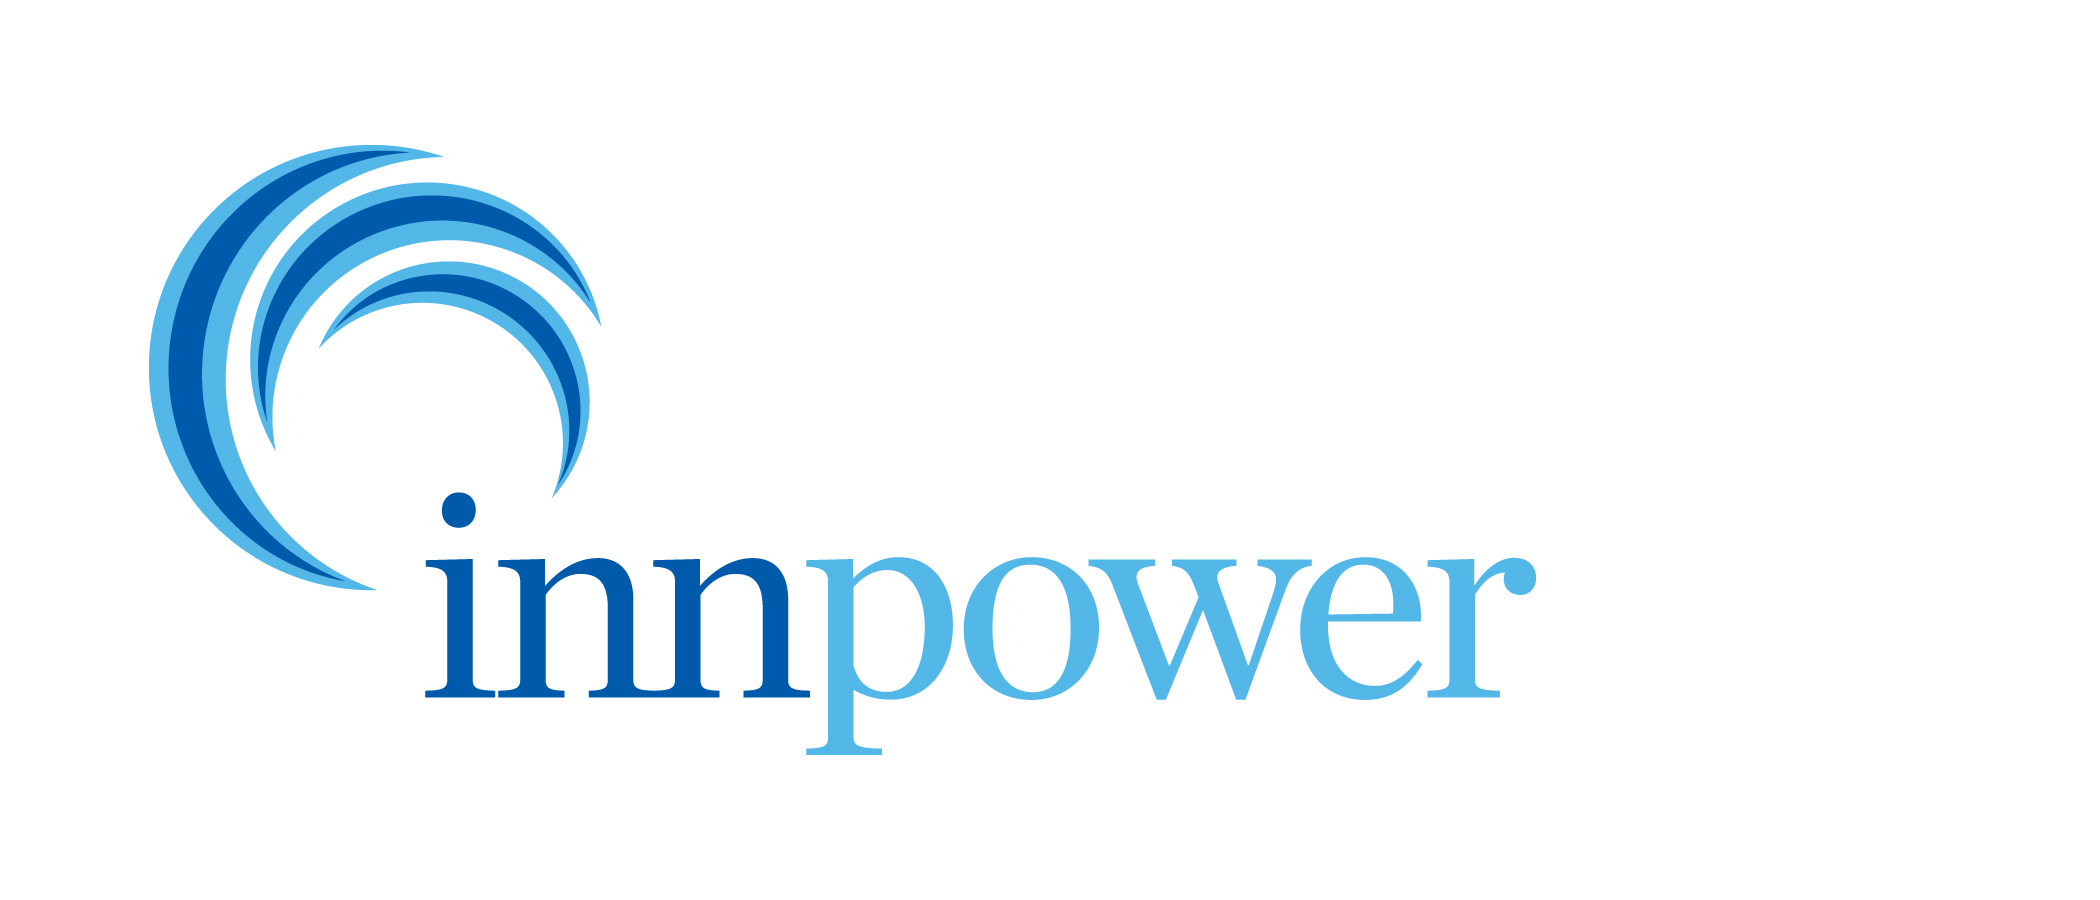 InnPower Corporation